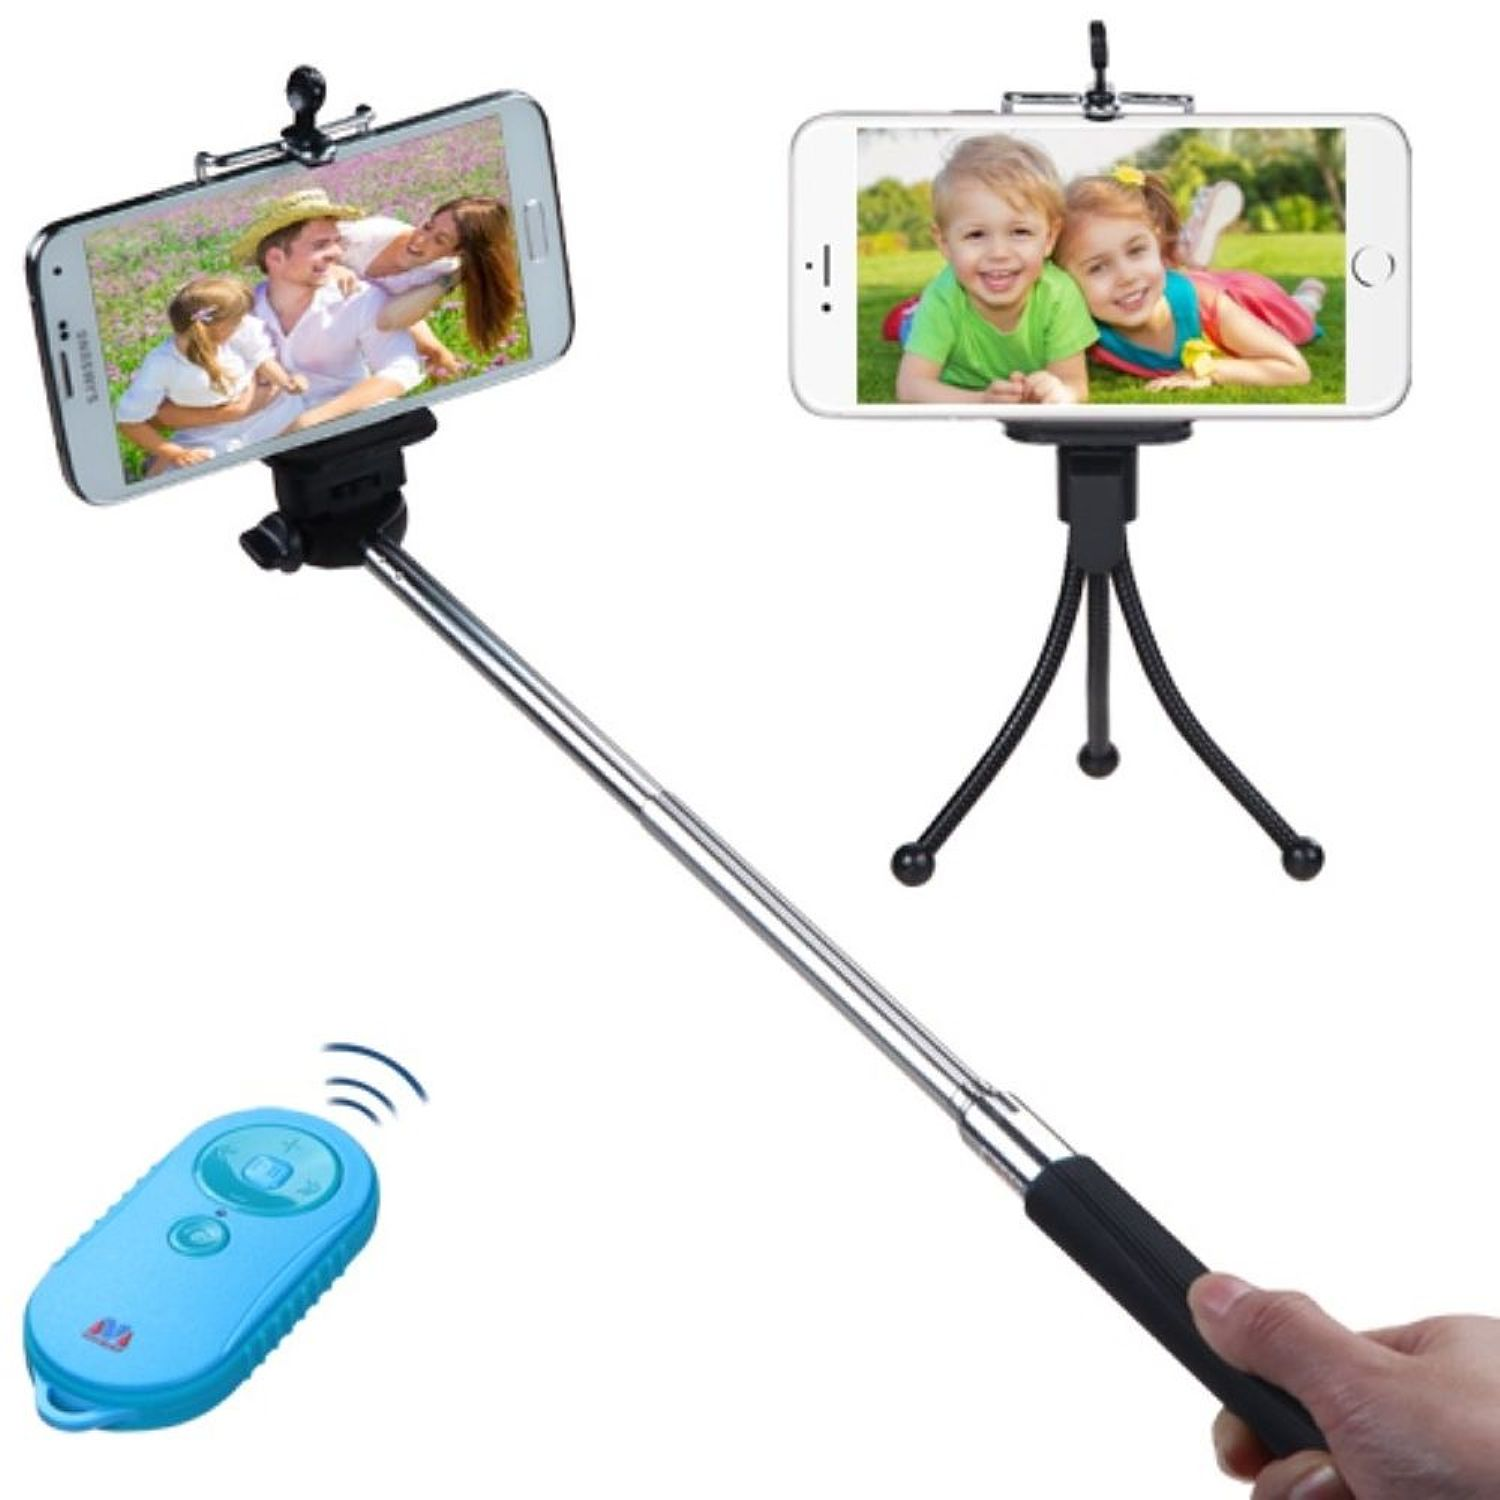 Insten Wireless 3-In-1 Monopod + Tripod Stand + Blue/Tropical Remote Shutter for Mobile Phone Camera